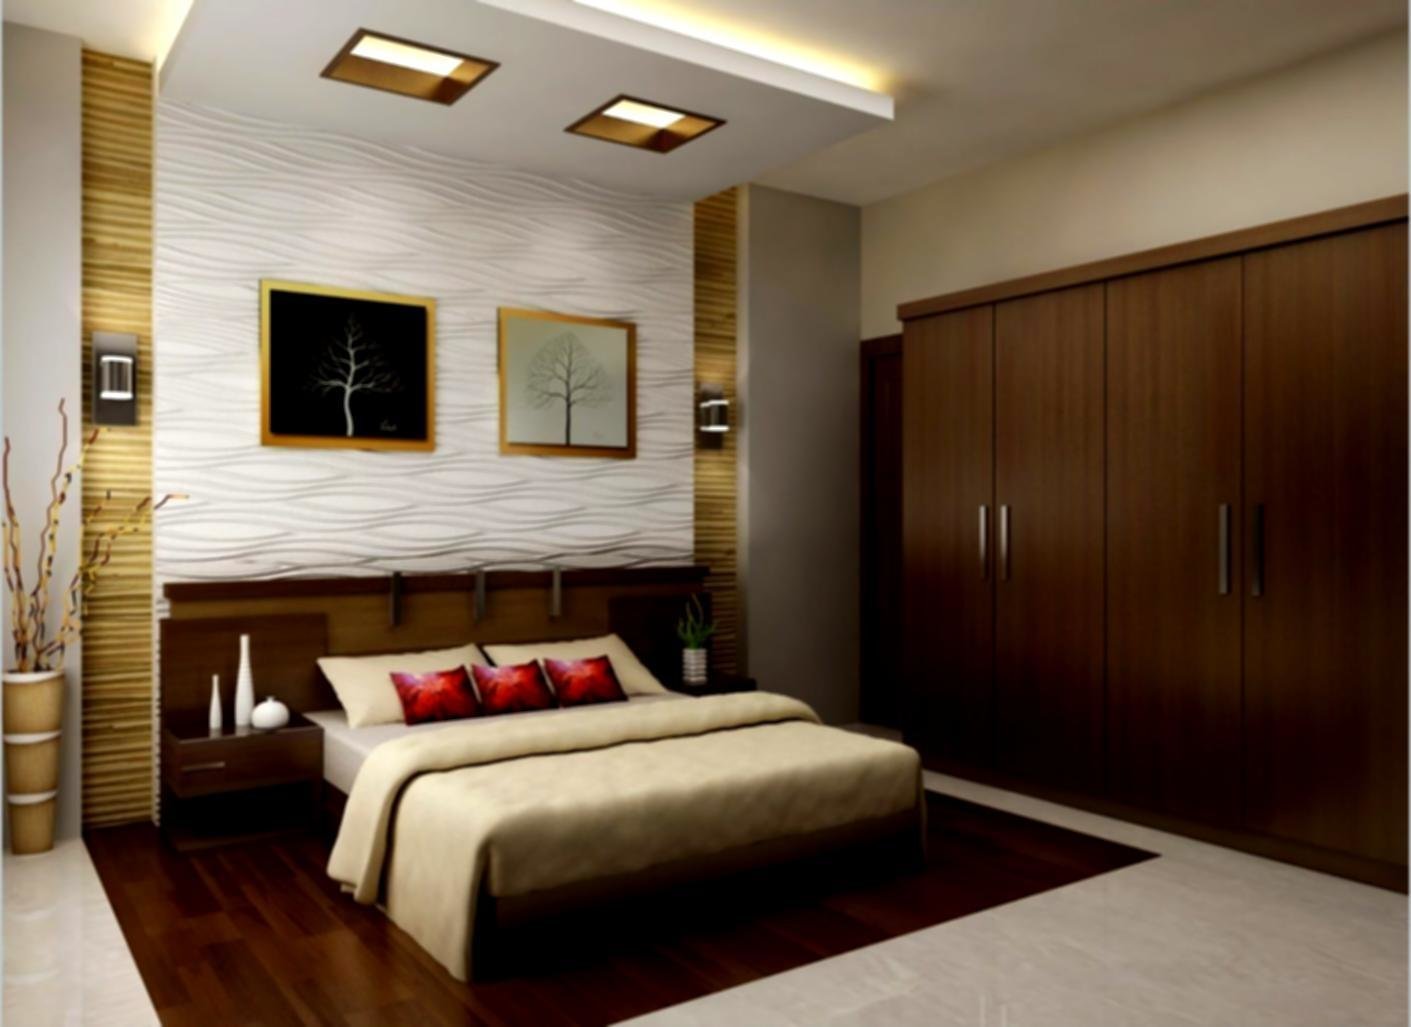 Best Indian Style Bedroom Design Ideas For Traditional Home Goodhomez Com With Pictures